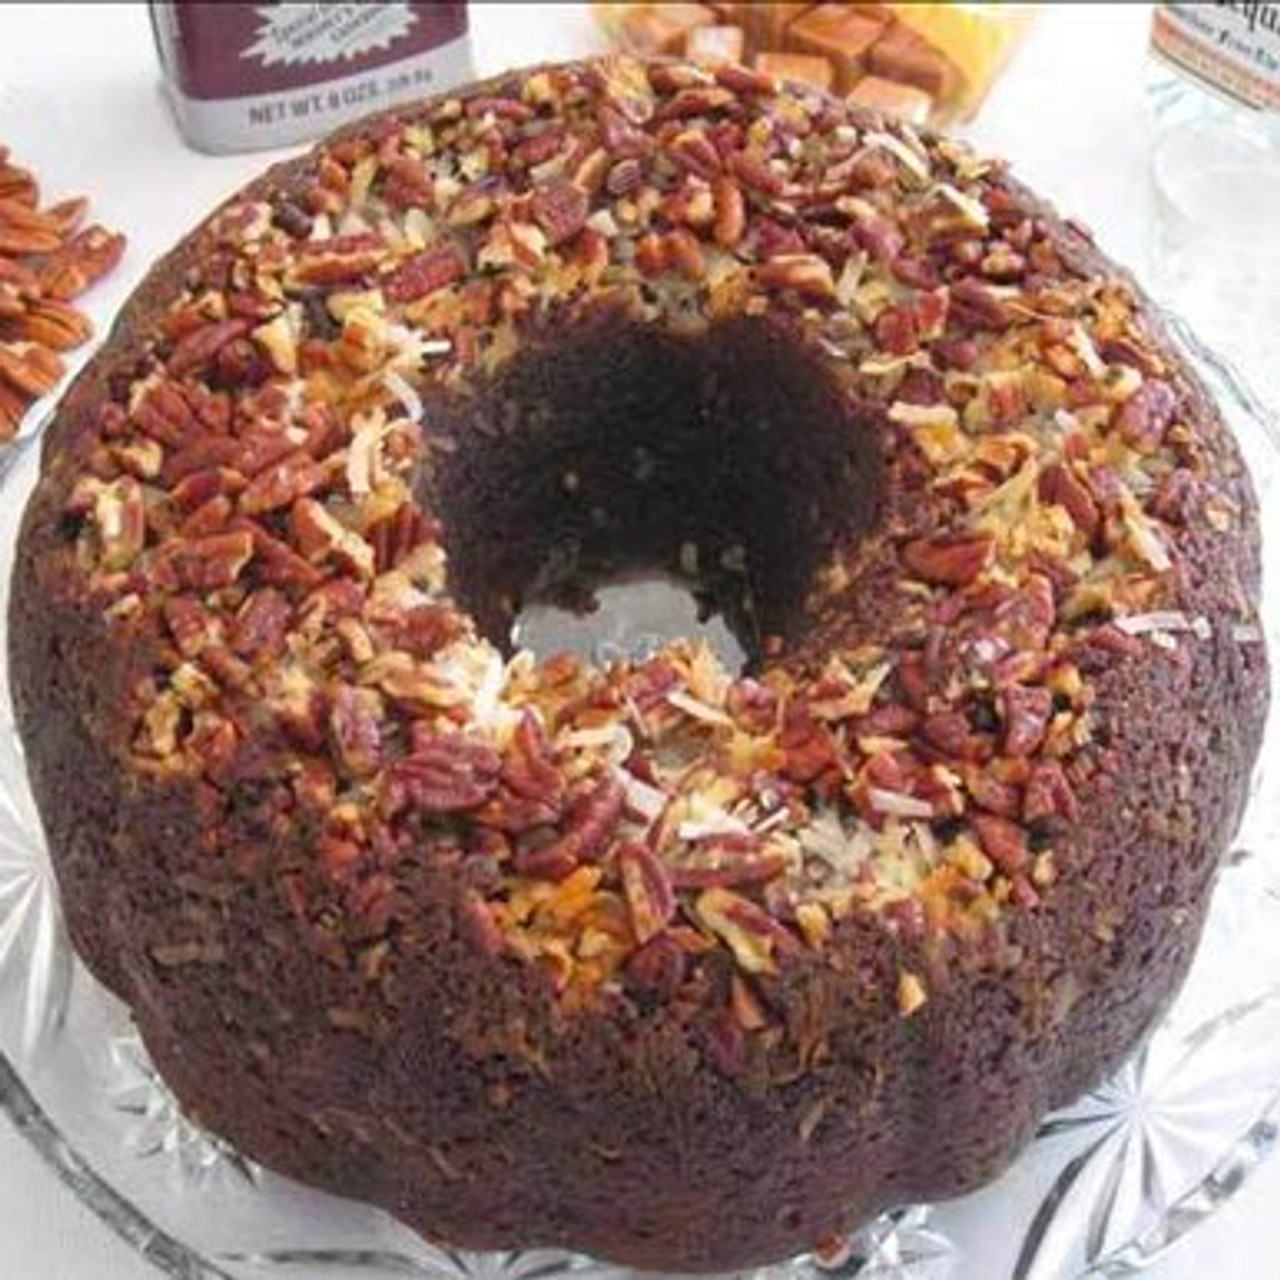 German Chocolate Cake with Caramel Vodka | STF Enterprises